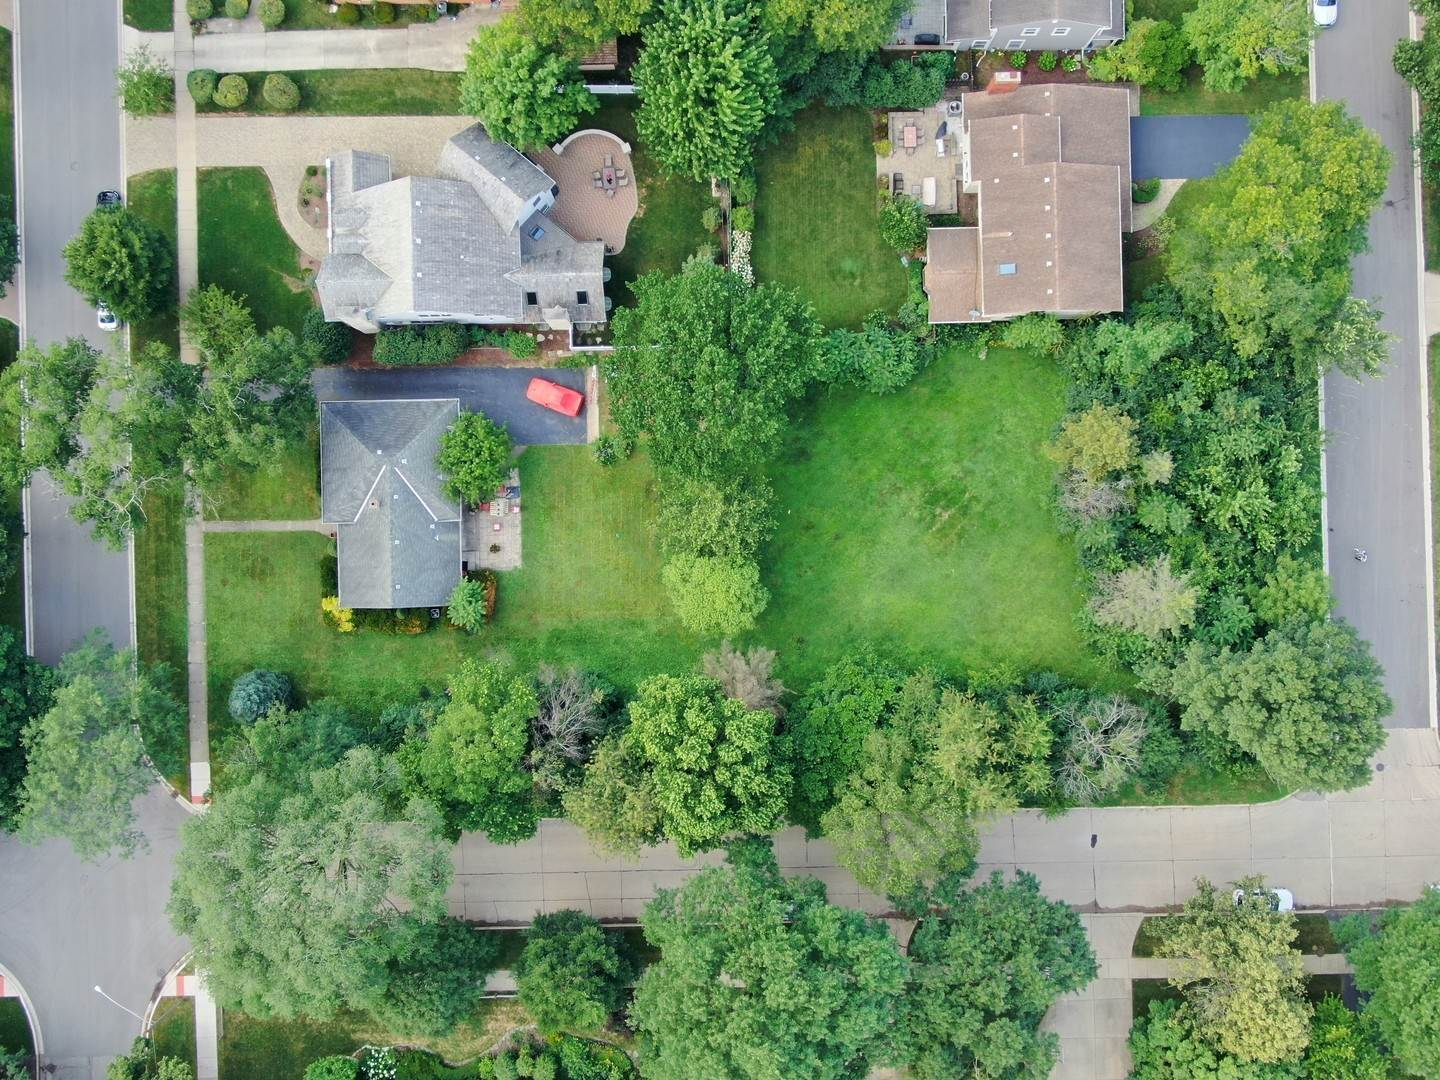 Land for Sale at 531 N Oak Street Hinsdale, Illinois 60521 United States